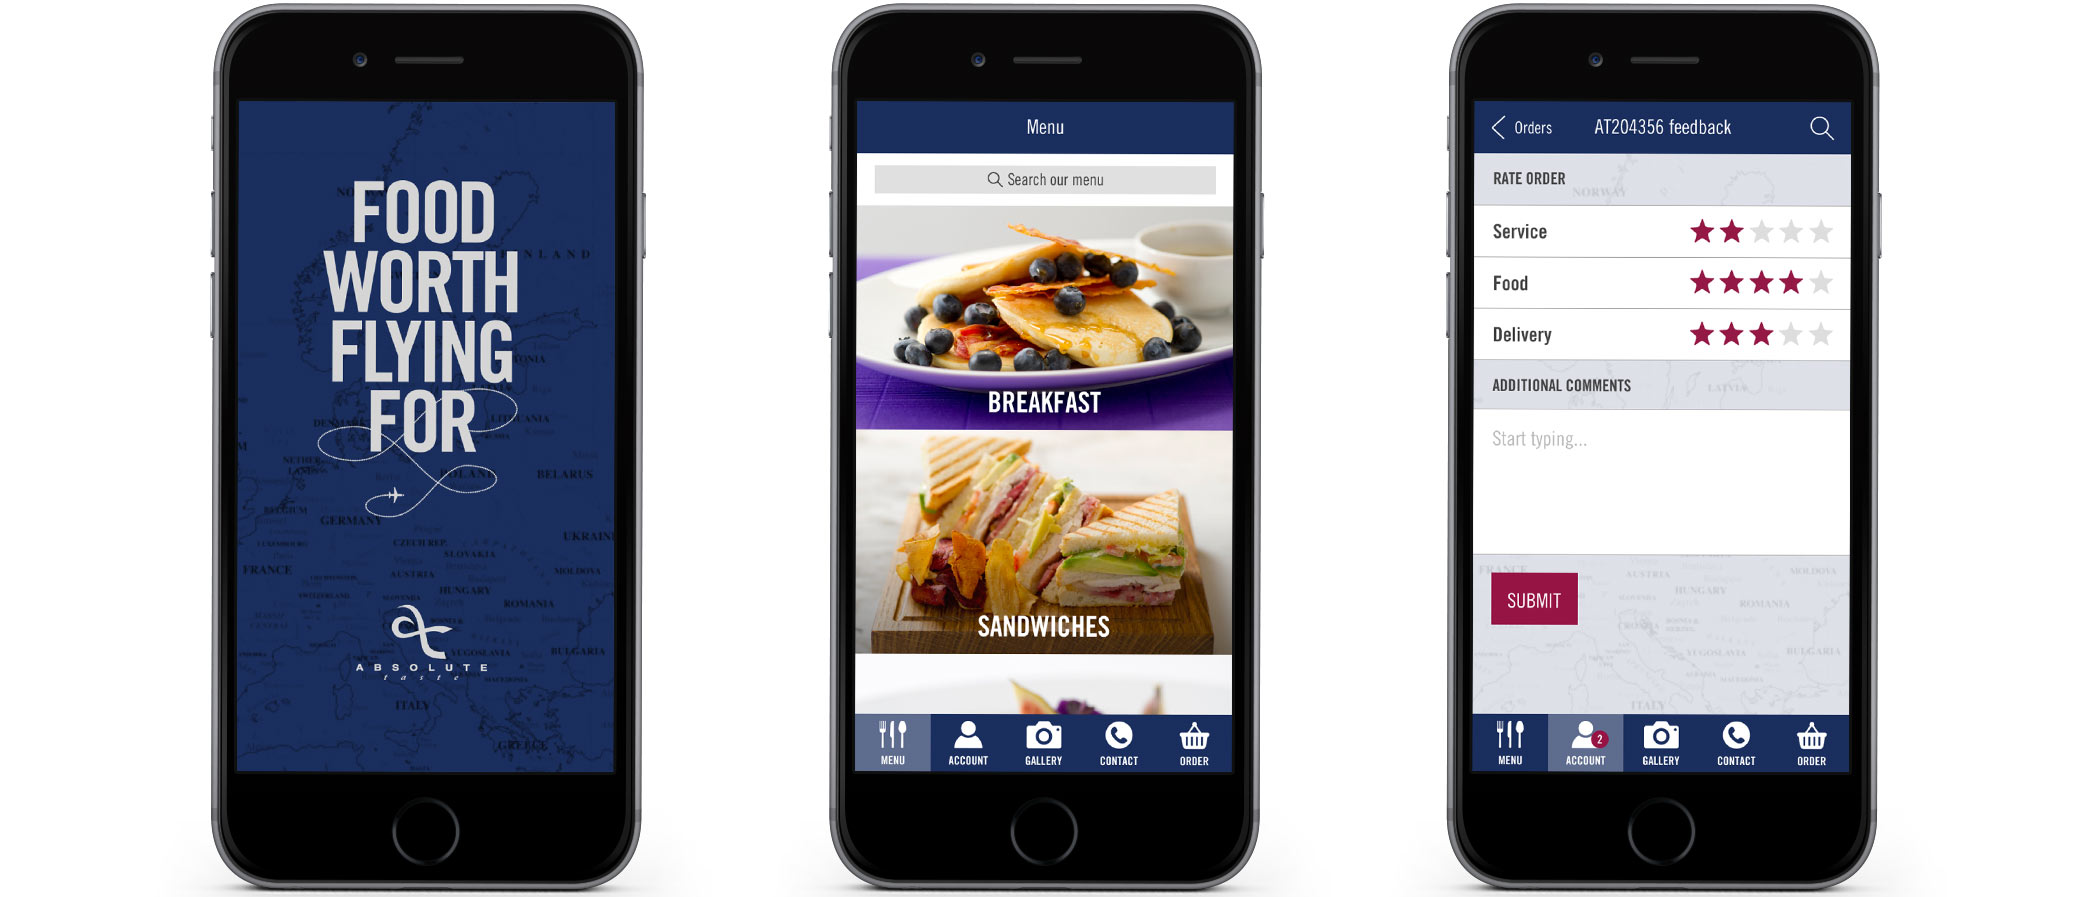 Absolute Taste native app design shown on smart phone